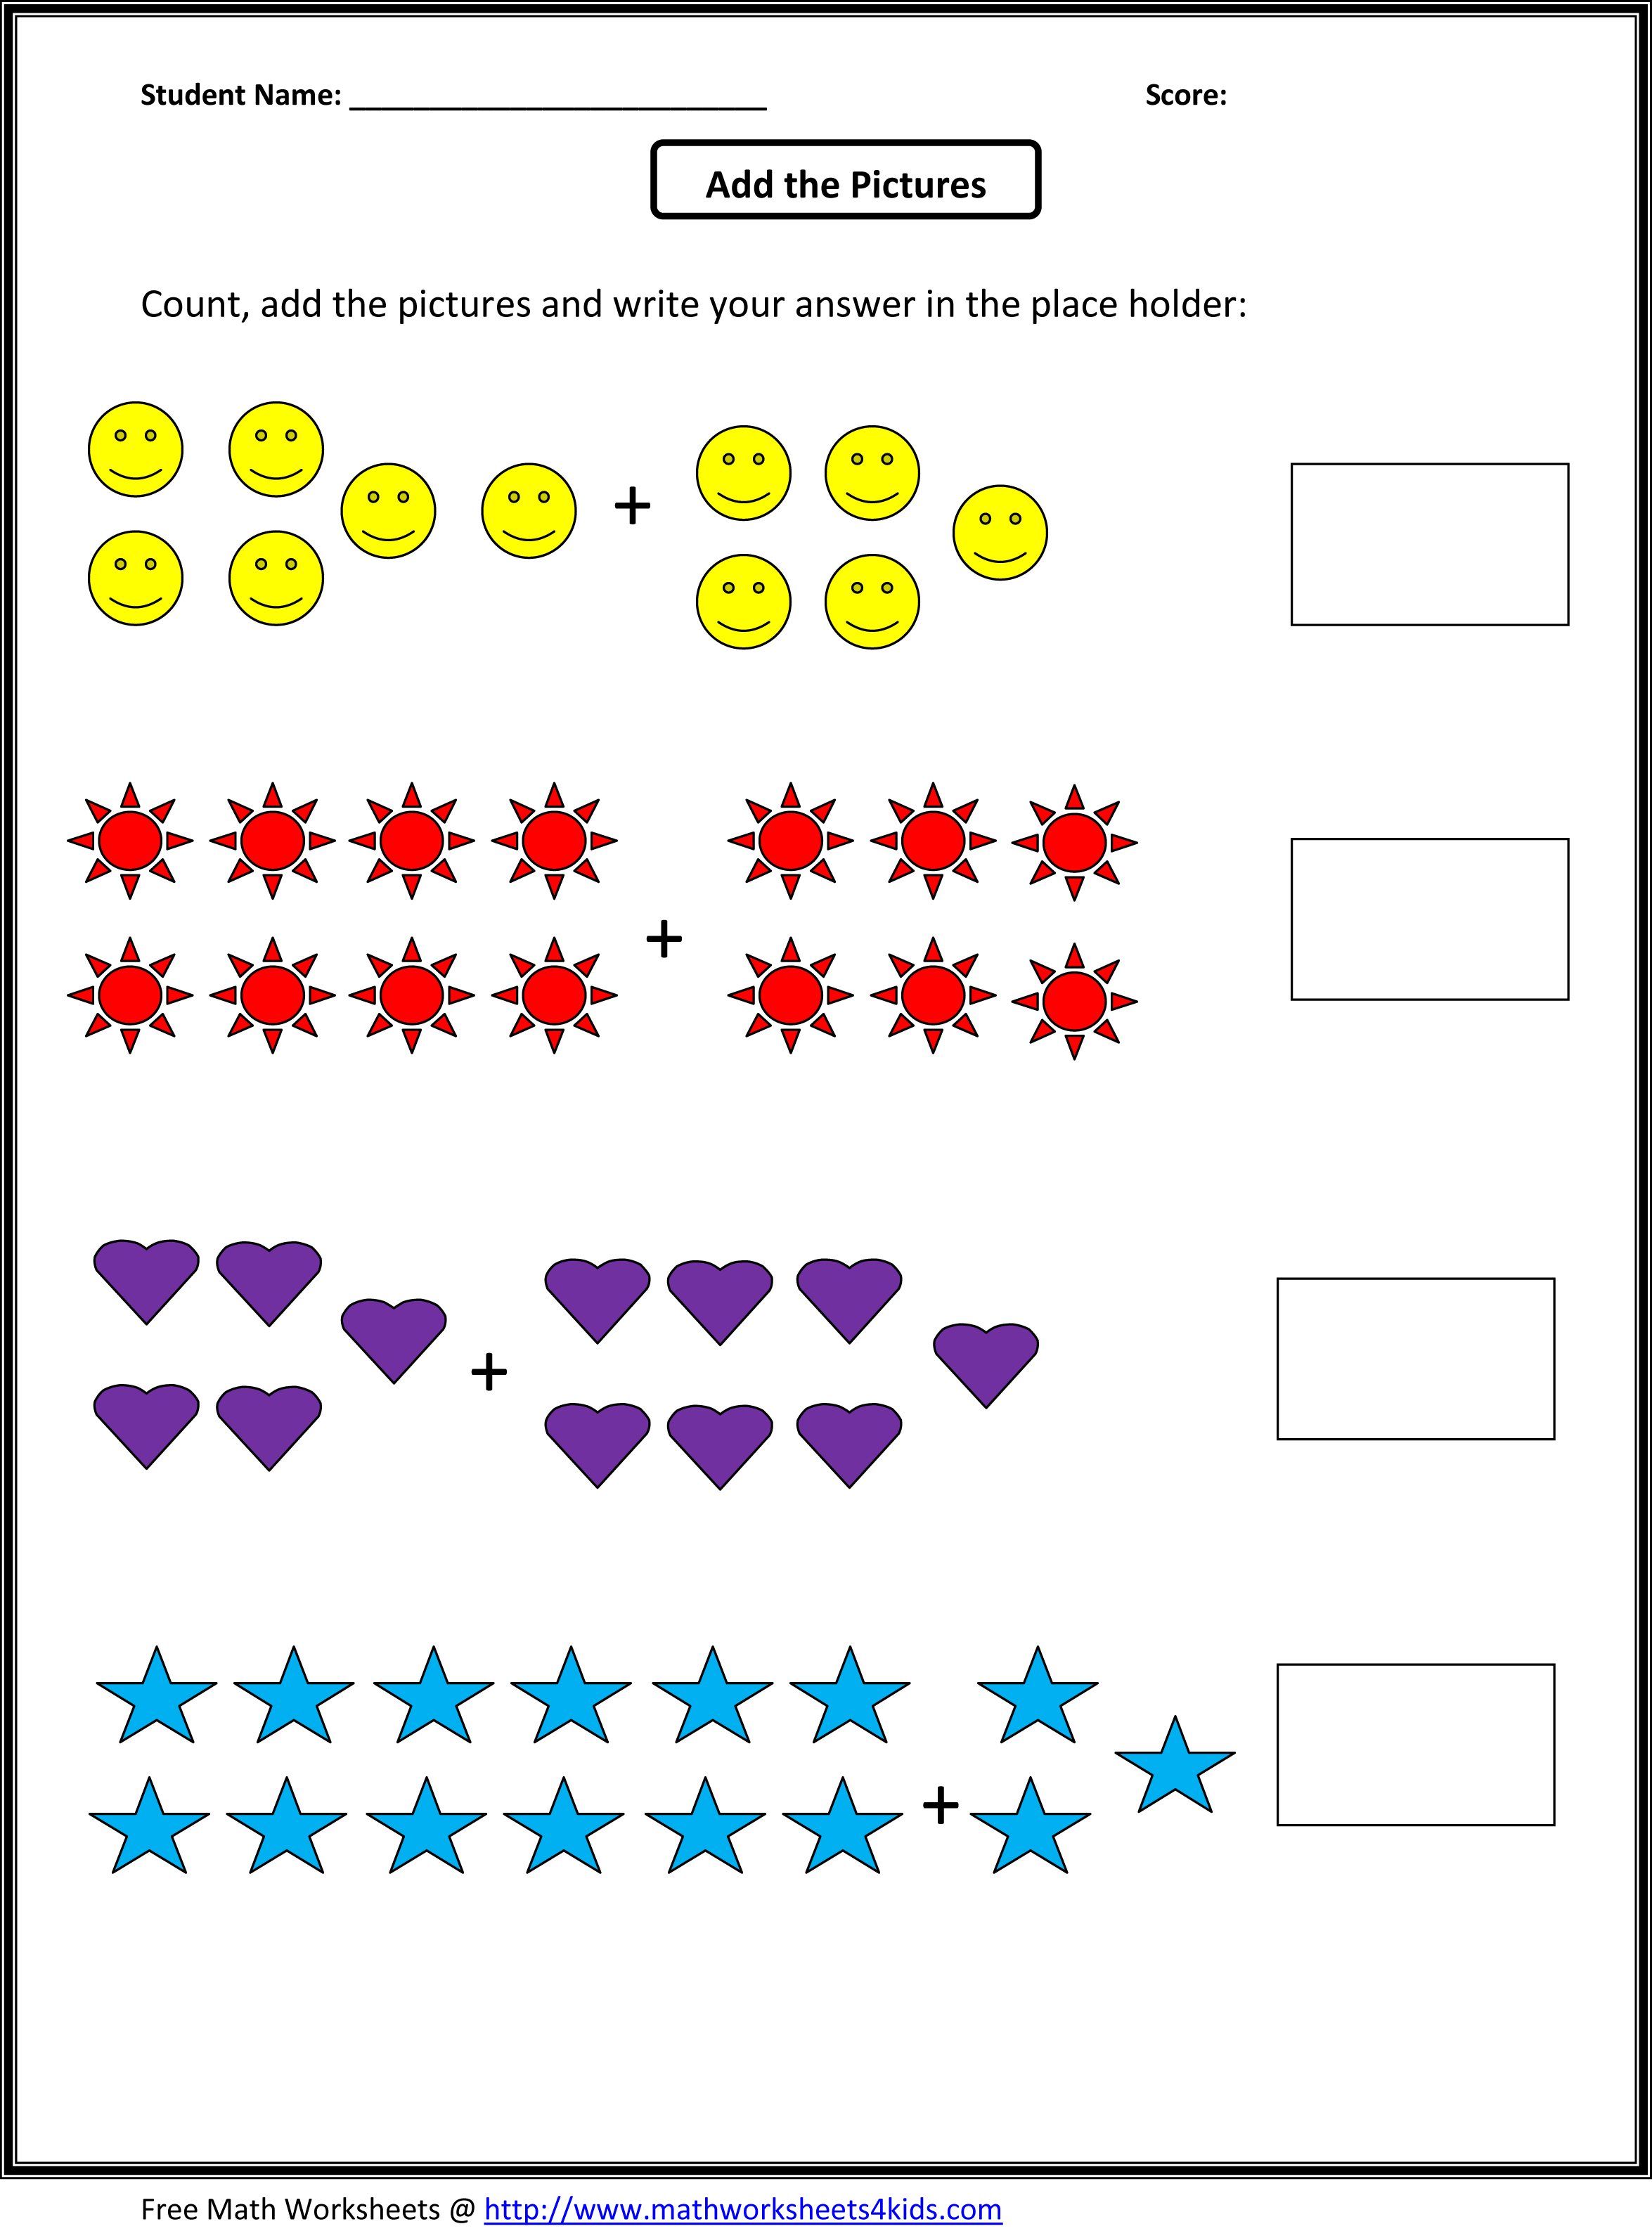 Aldiablosus  Remarkable Grade  Maths Worksheet  Reocurent With Lovely Math Worksheets For St Grade Free  Reocurent With Charming Subject Verb Agreement Printable Worksheets Also Fraction Of A Set Worksheet In Addition Syllable Worksheet And Genetics Basics Worksheet As Well As Solving Quadratics By Graphing Worksheet Additionally Doubles Worksheets From Reocurentcom With Aldiablosus  Lovely Grade  Maths Worksheet  Reocurent With Charming Math Worksheets For St Grade Free  Reocurent And Remarkable Subject Verb Agreement Printable Worksheets Also Fraction Of A Set Worksheet In Addition Syllable Worksheet From Reocurentcom